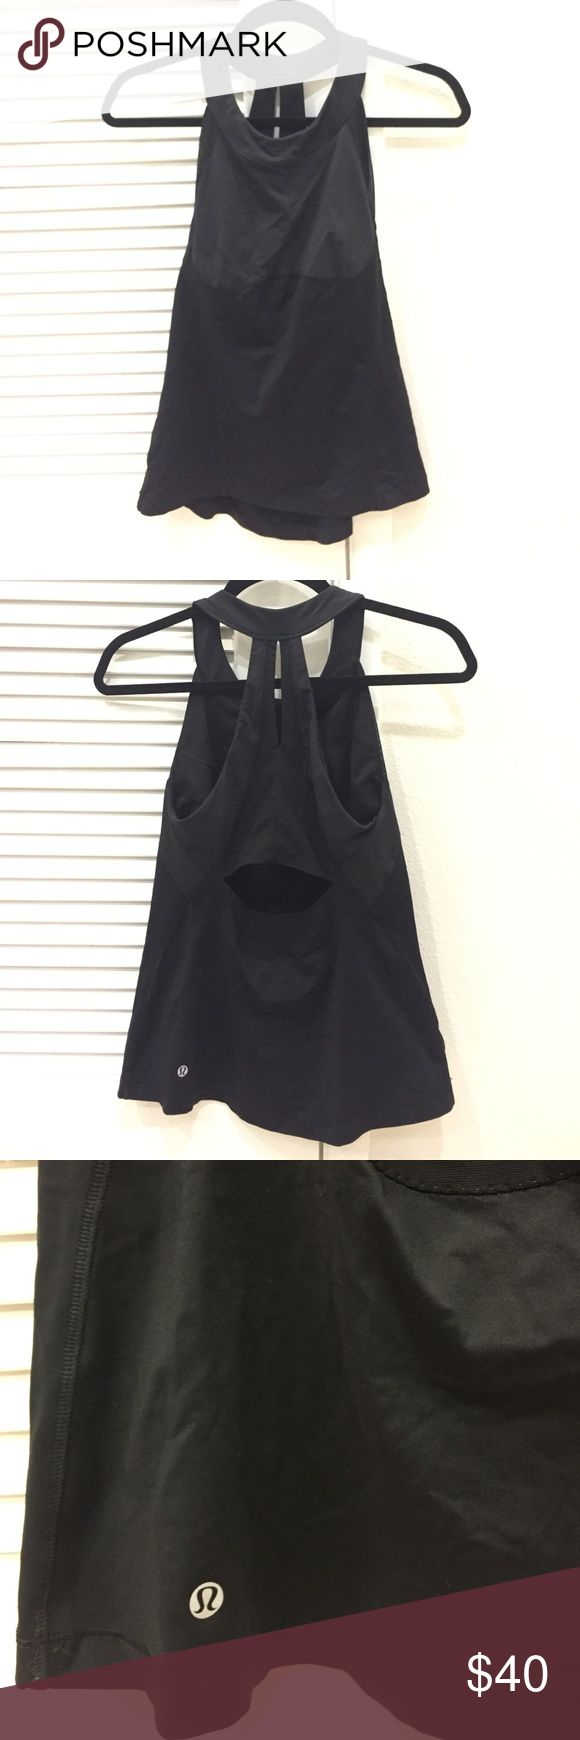 Black Lulu Lemon built-in bra running top Black Lulu Lemon women's running top; built in bra; decent support for a-b cup; medium support for c+ cup; worn twice lululemon athletica Tops Tank Tops